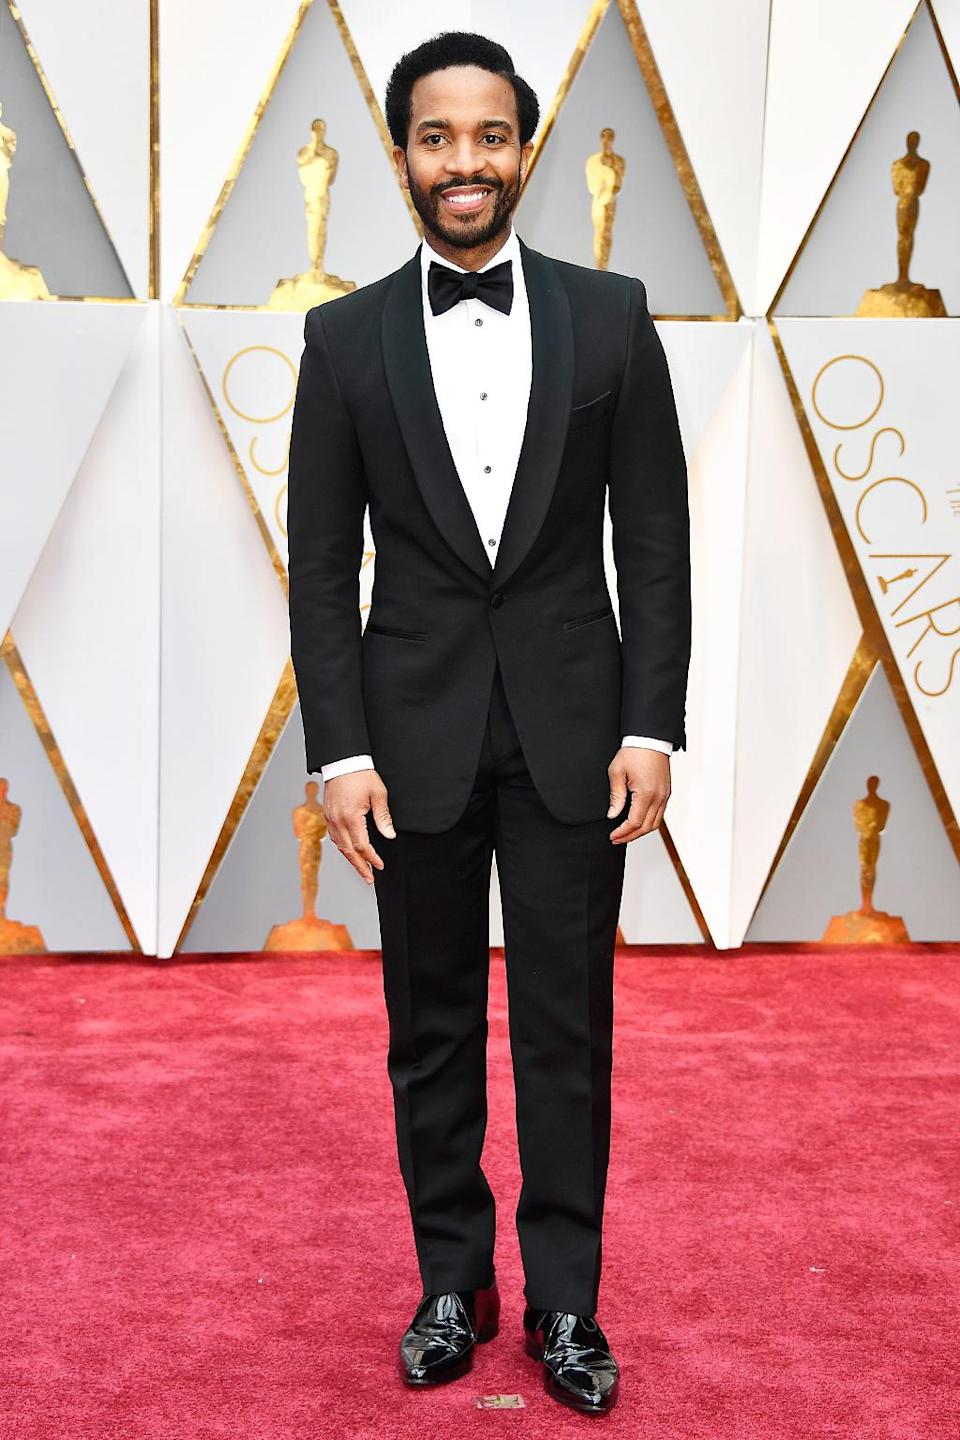 <p>Actor André Holland attends the 89th Annual Academy Awards at Hollywood & Highland Center on February 26, 2017 in Hollywood, California. (Photo by Frazer Harrison/Getty Images) </p>